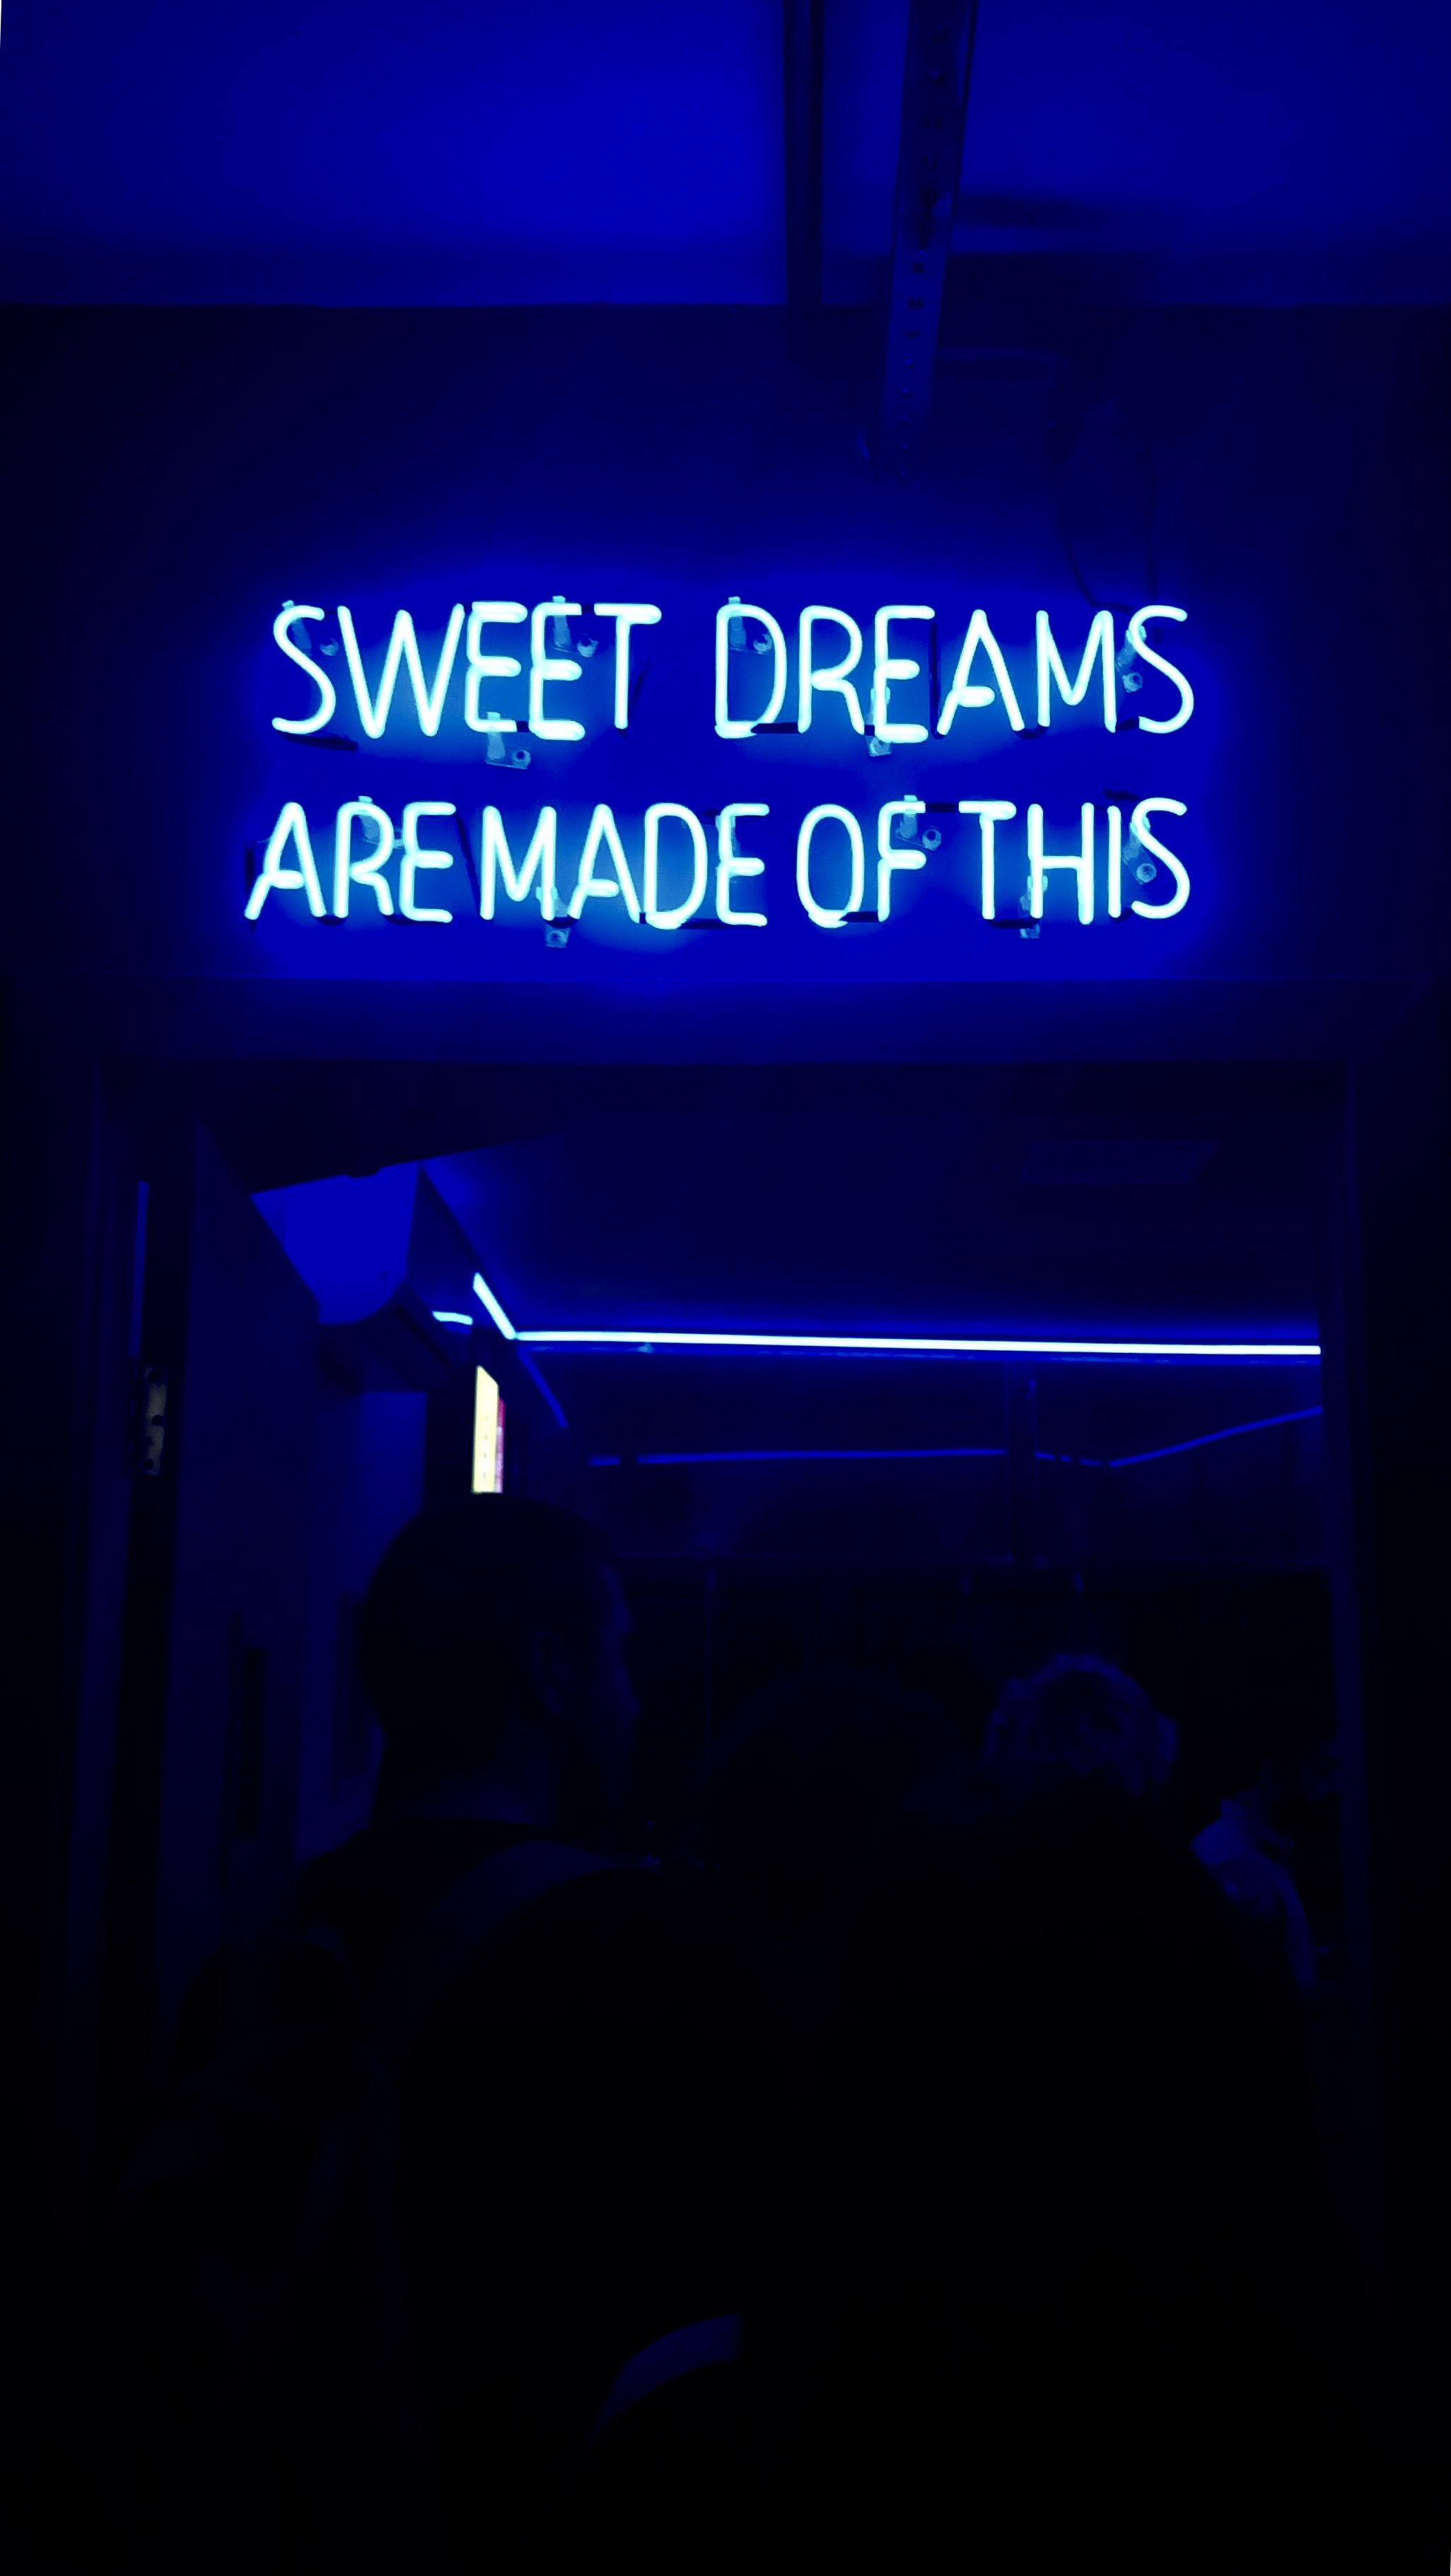 Stella Marques Stel Fotos E Videos Do Instagram Neon Quotes Blue Aesthetic Dark Neon Words